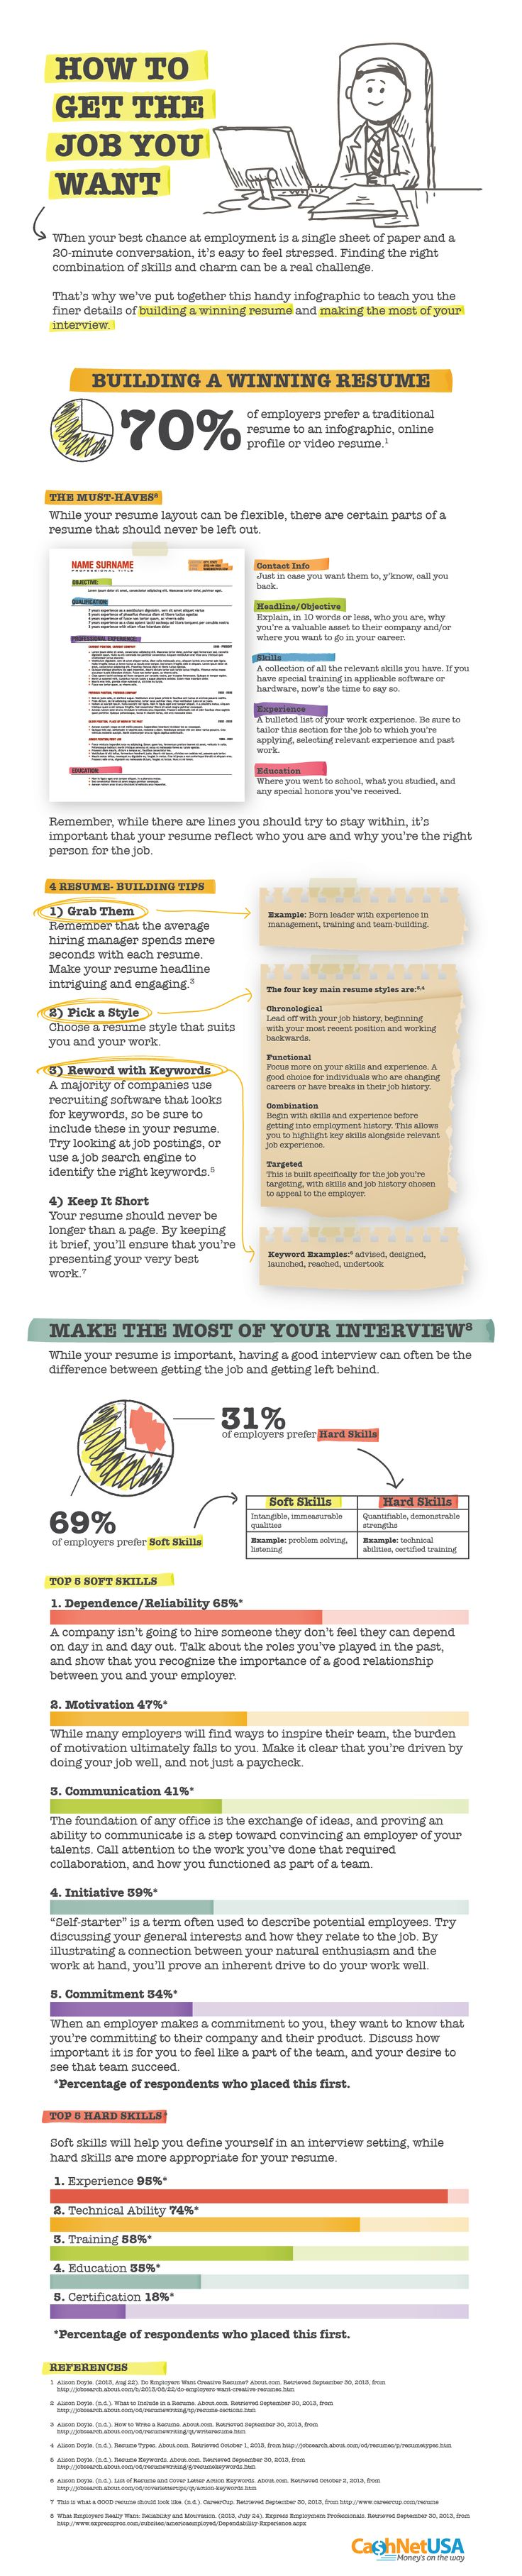 how to build resume infographic